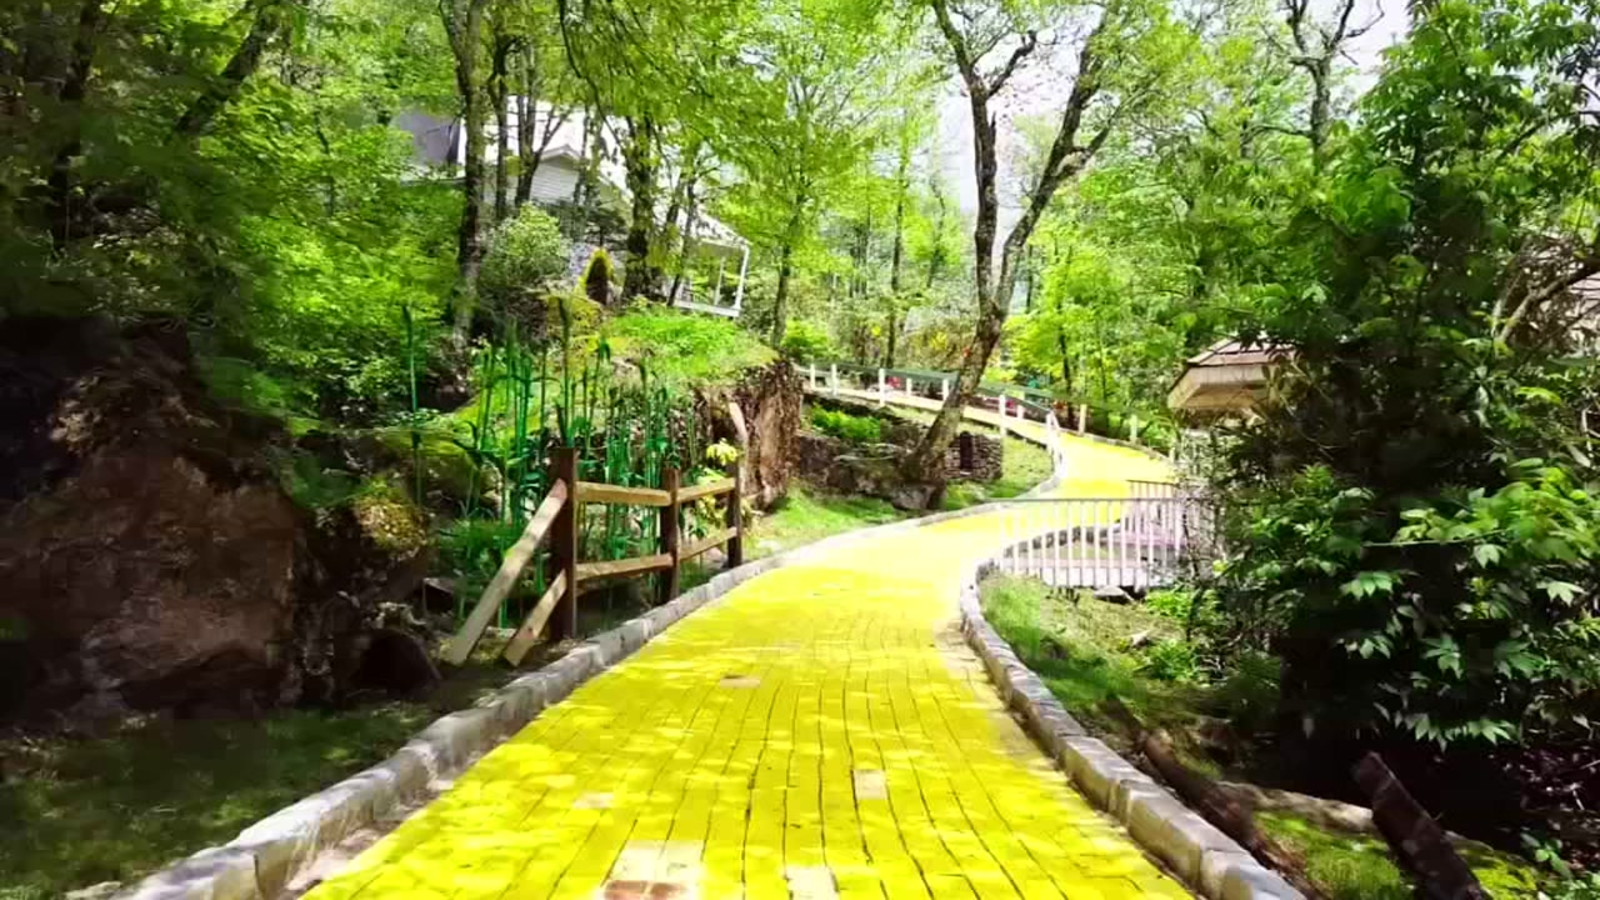 Closed 1970s theme park 'Land of Oz' plans to open for select dates this summer